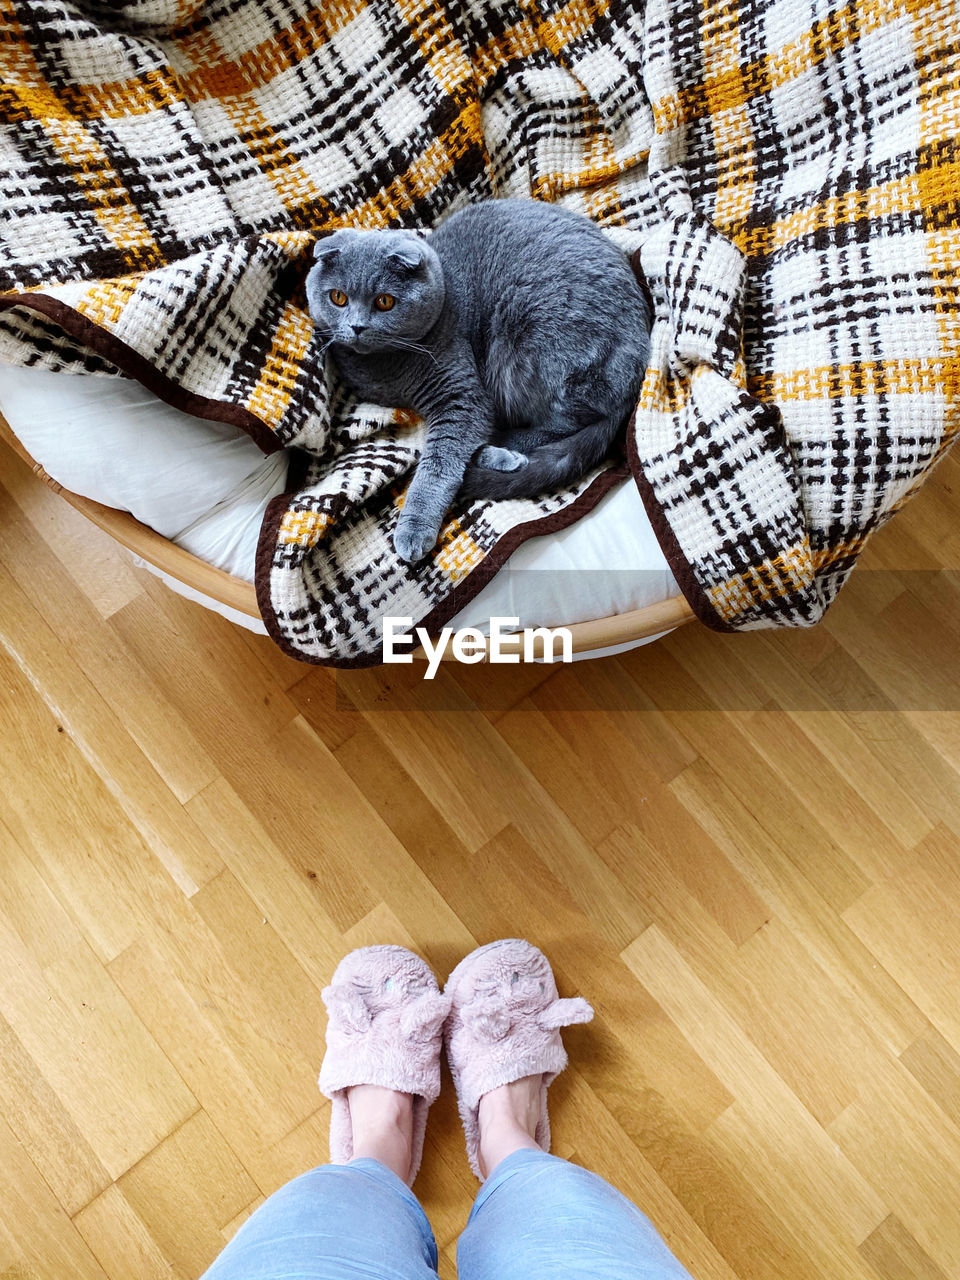 Feet of a person wearing slippers at home and a sleeping cat